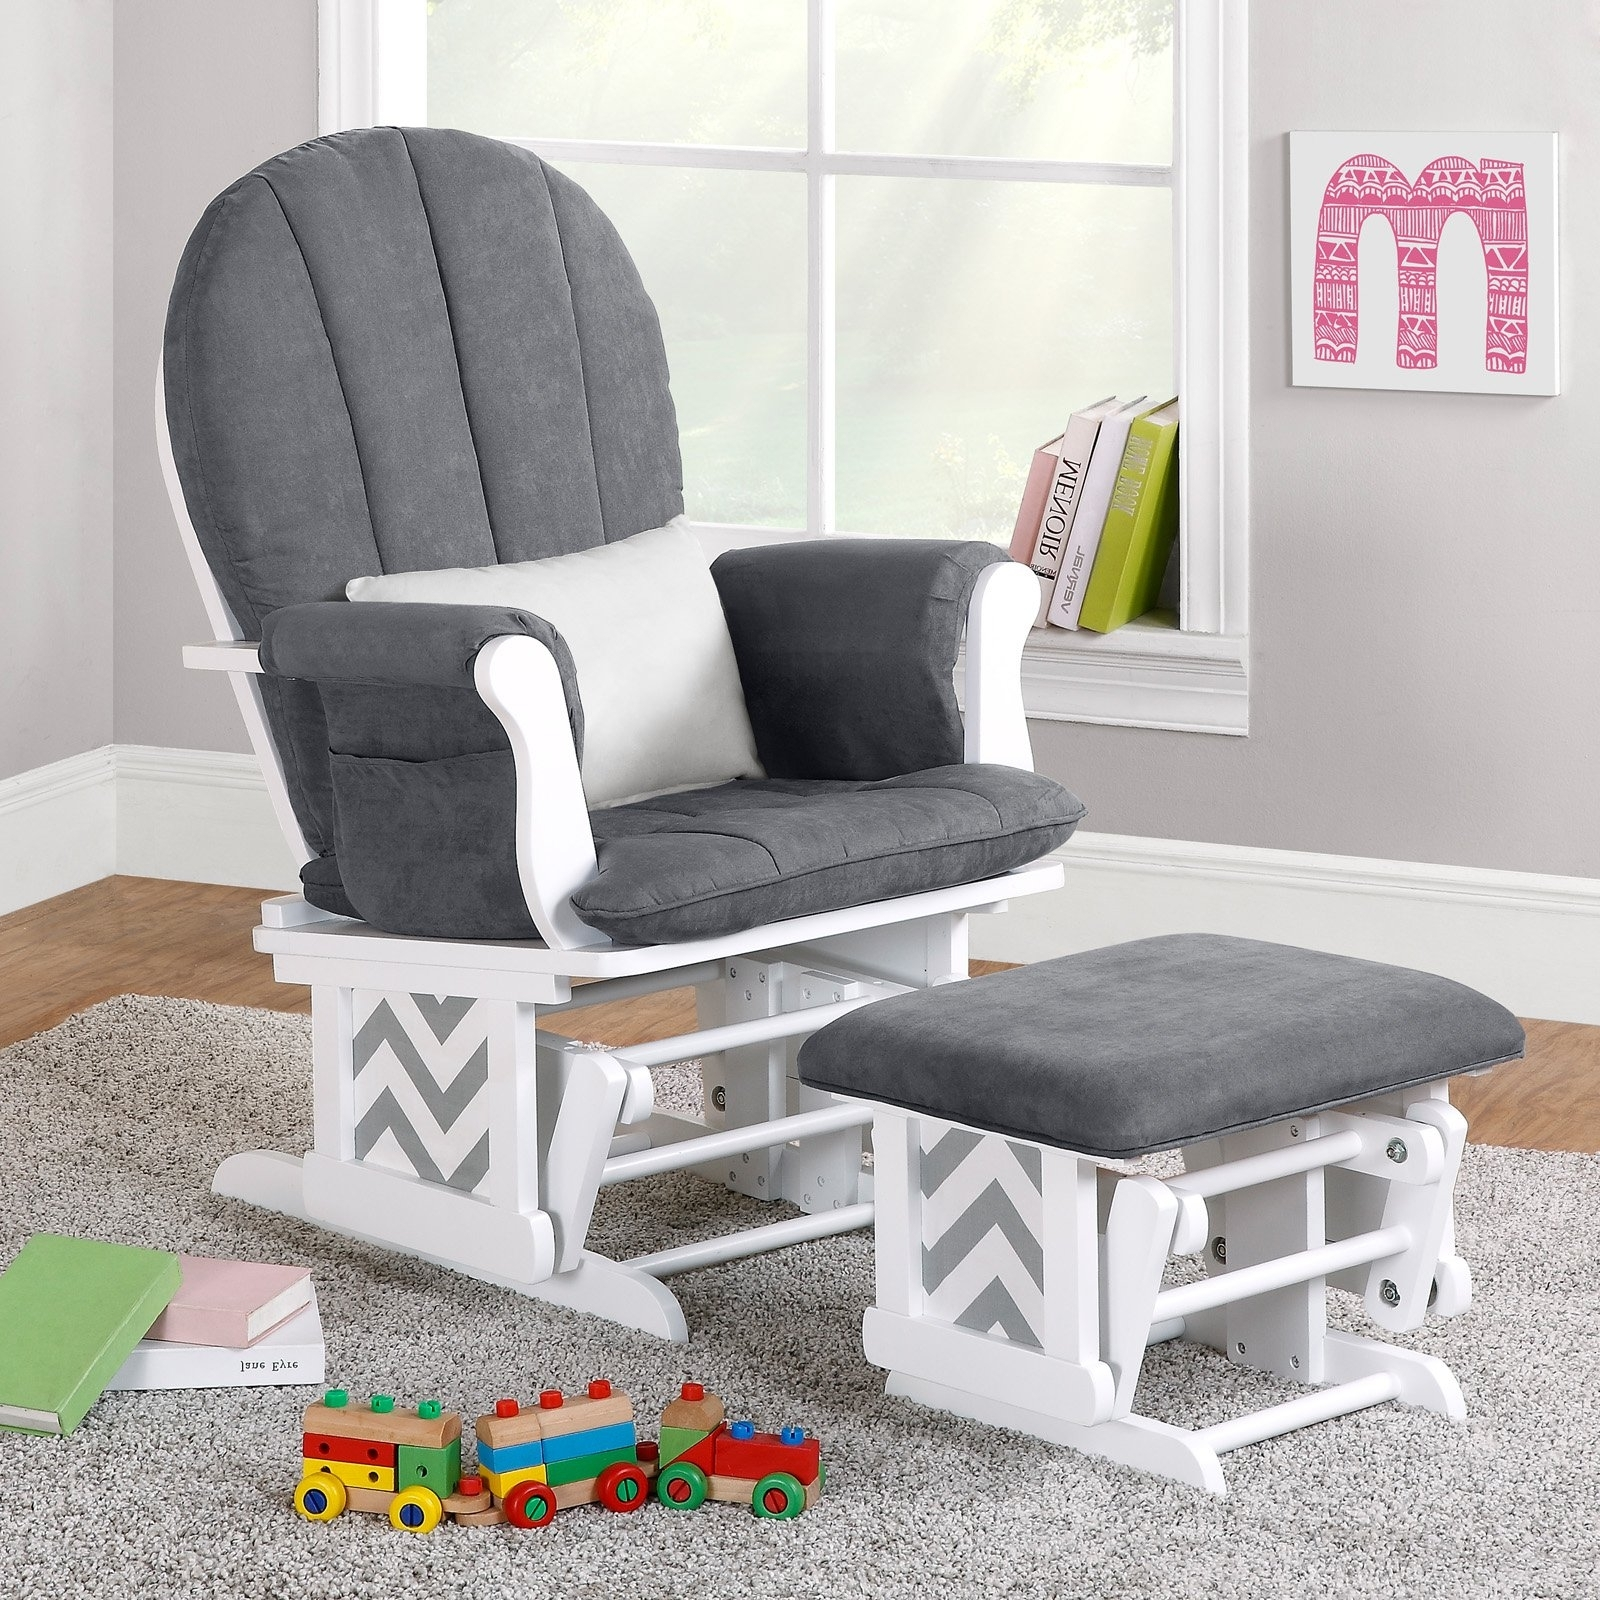 Widely Used Rocking Chairs For Nursery Regarding Furniture: Nursery Classicsklaussner Landis Swivel Glider Rocker (View 14 of 15)